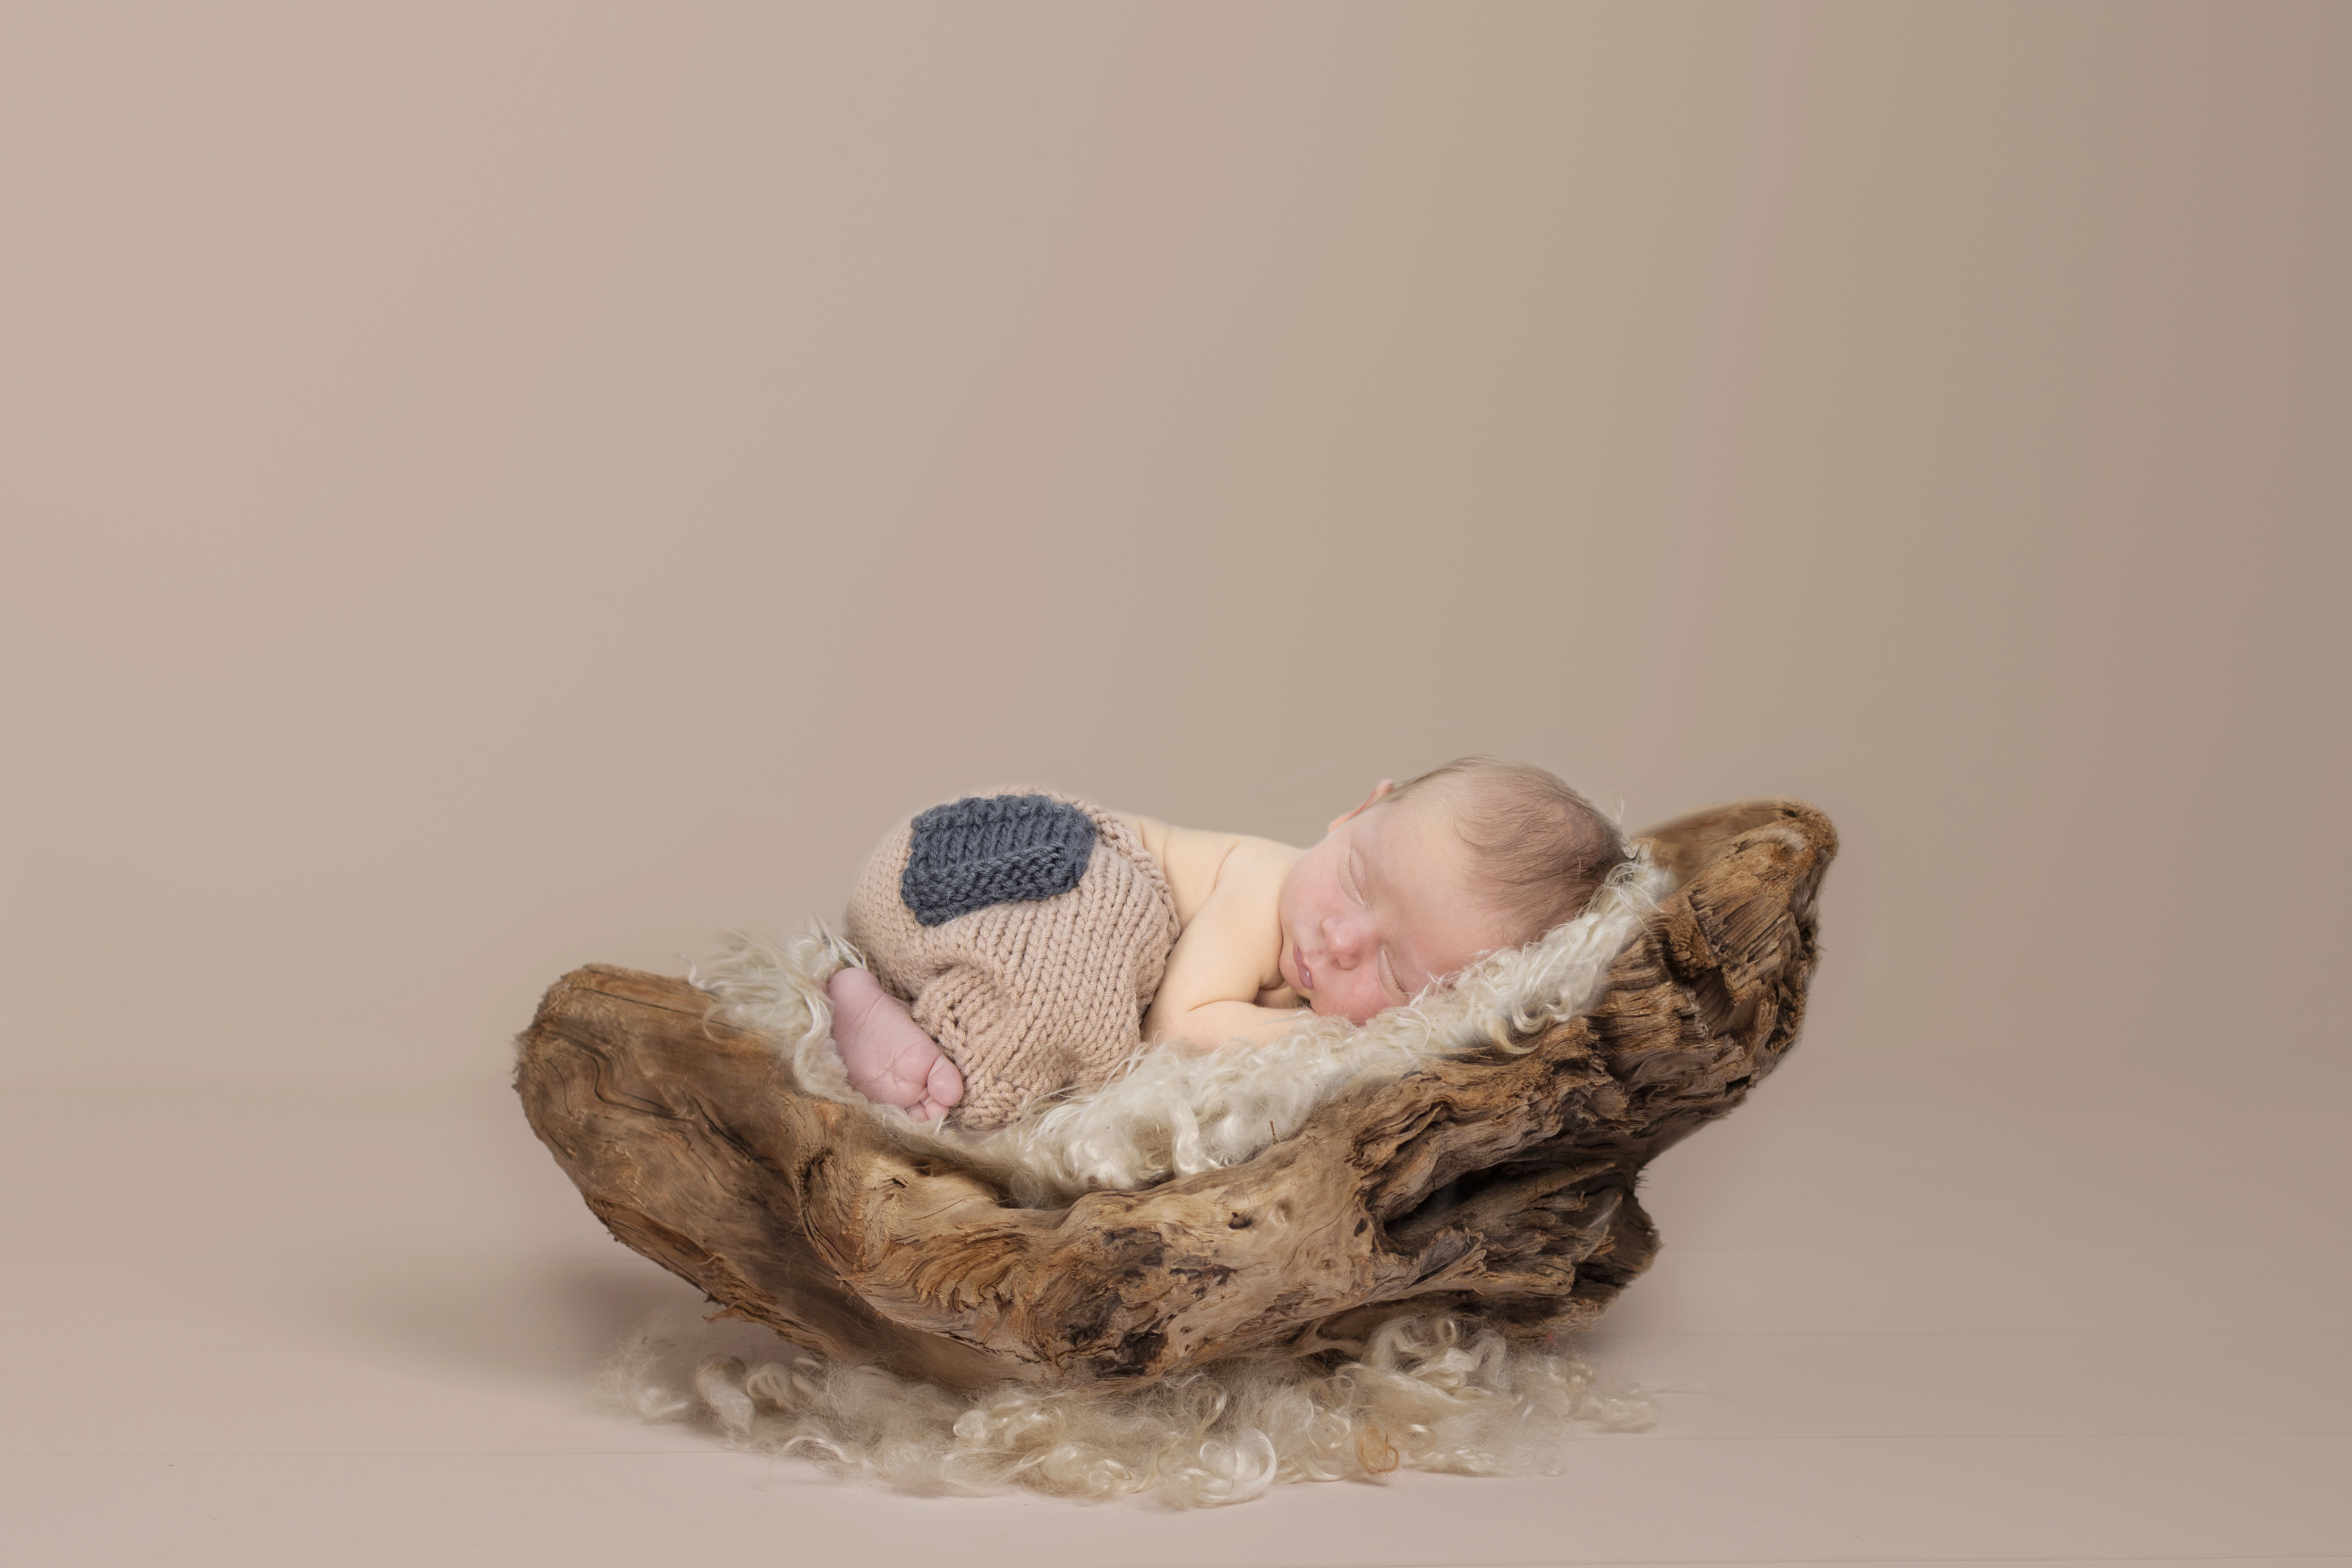 driftwood-on-cream-newborn-prop-download 2